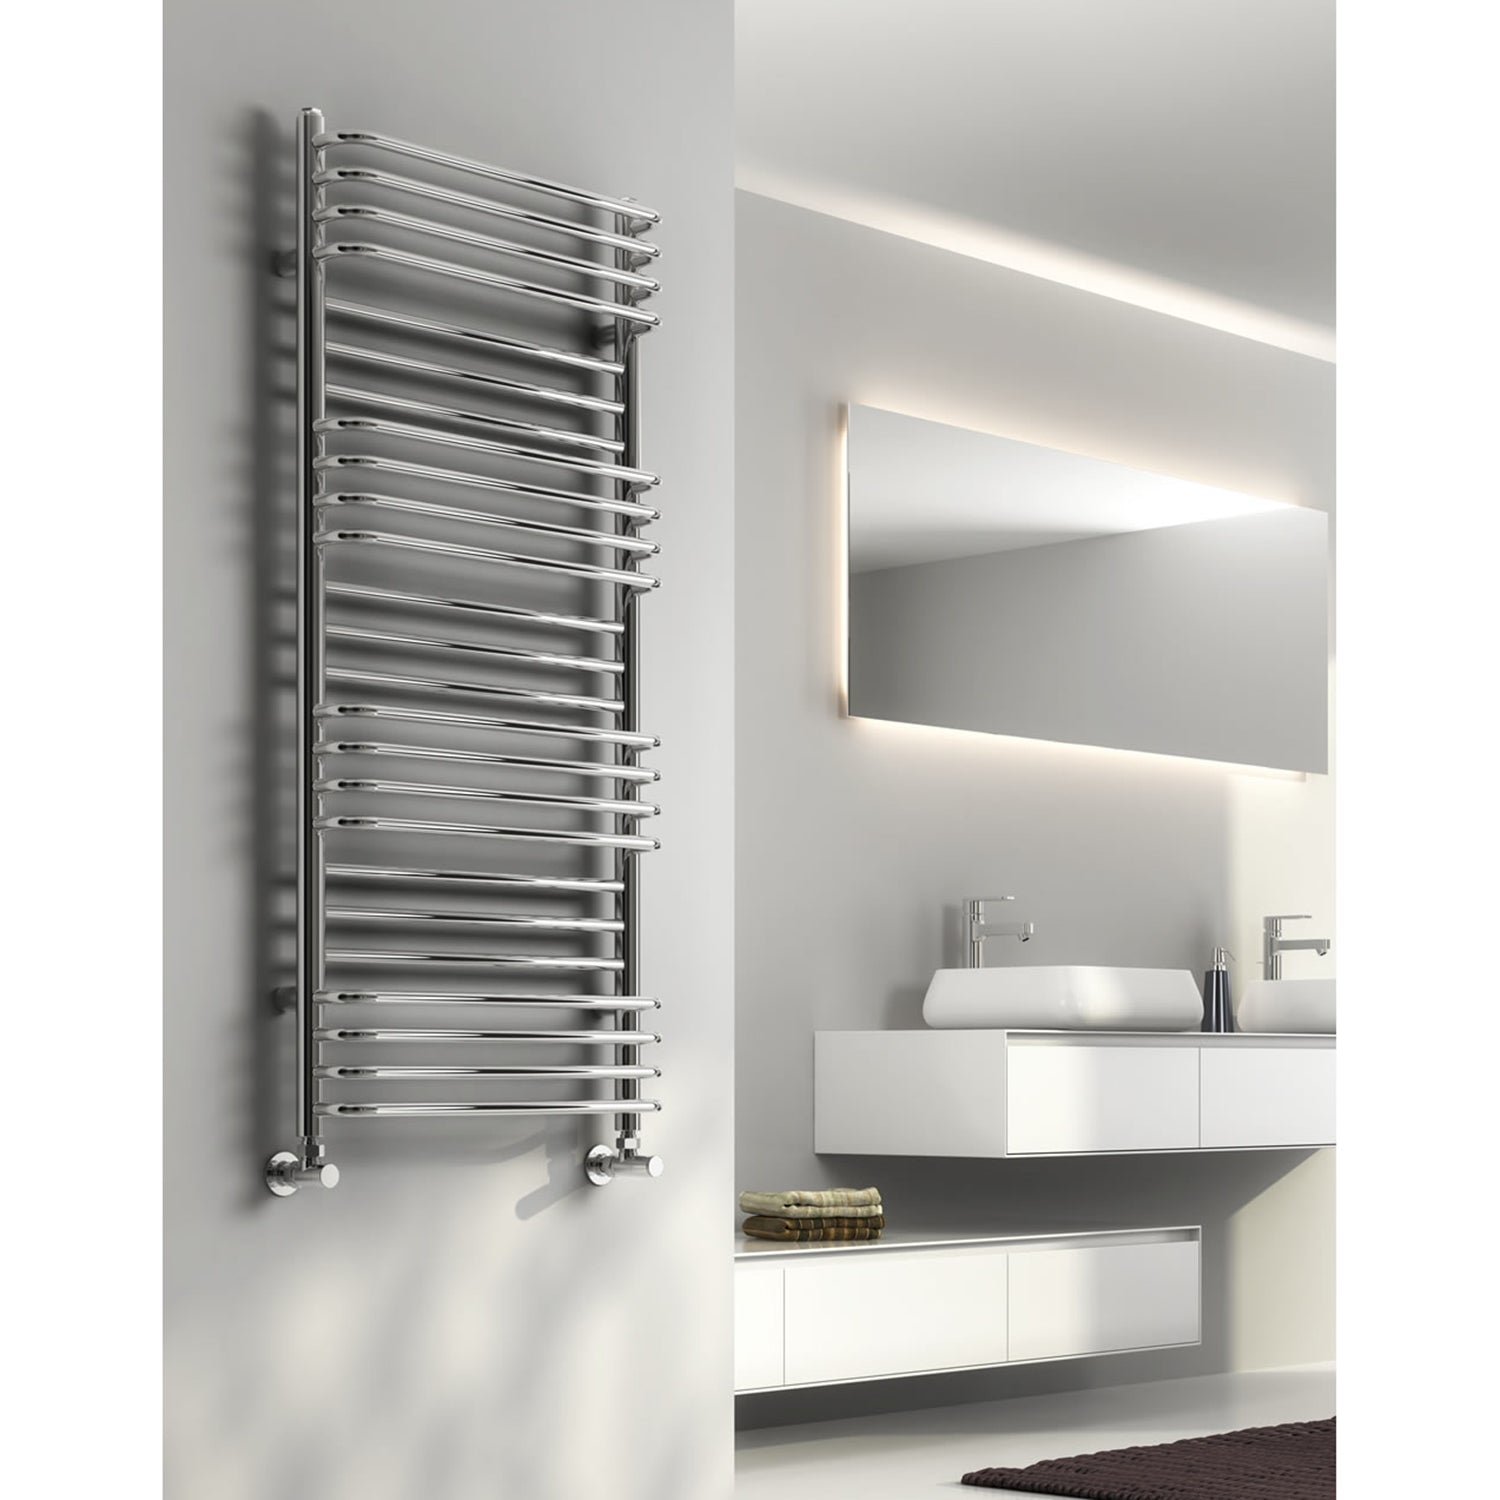 Reina Marco Designer Towel Rail Radiators